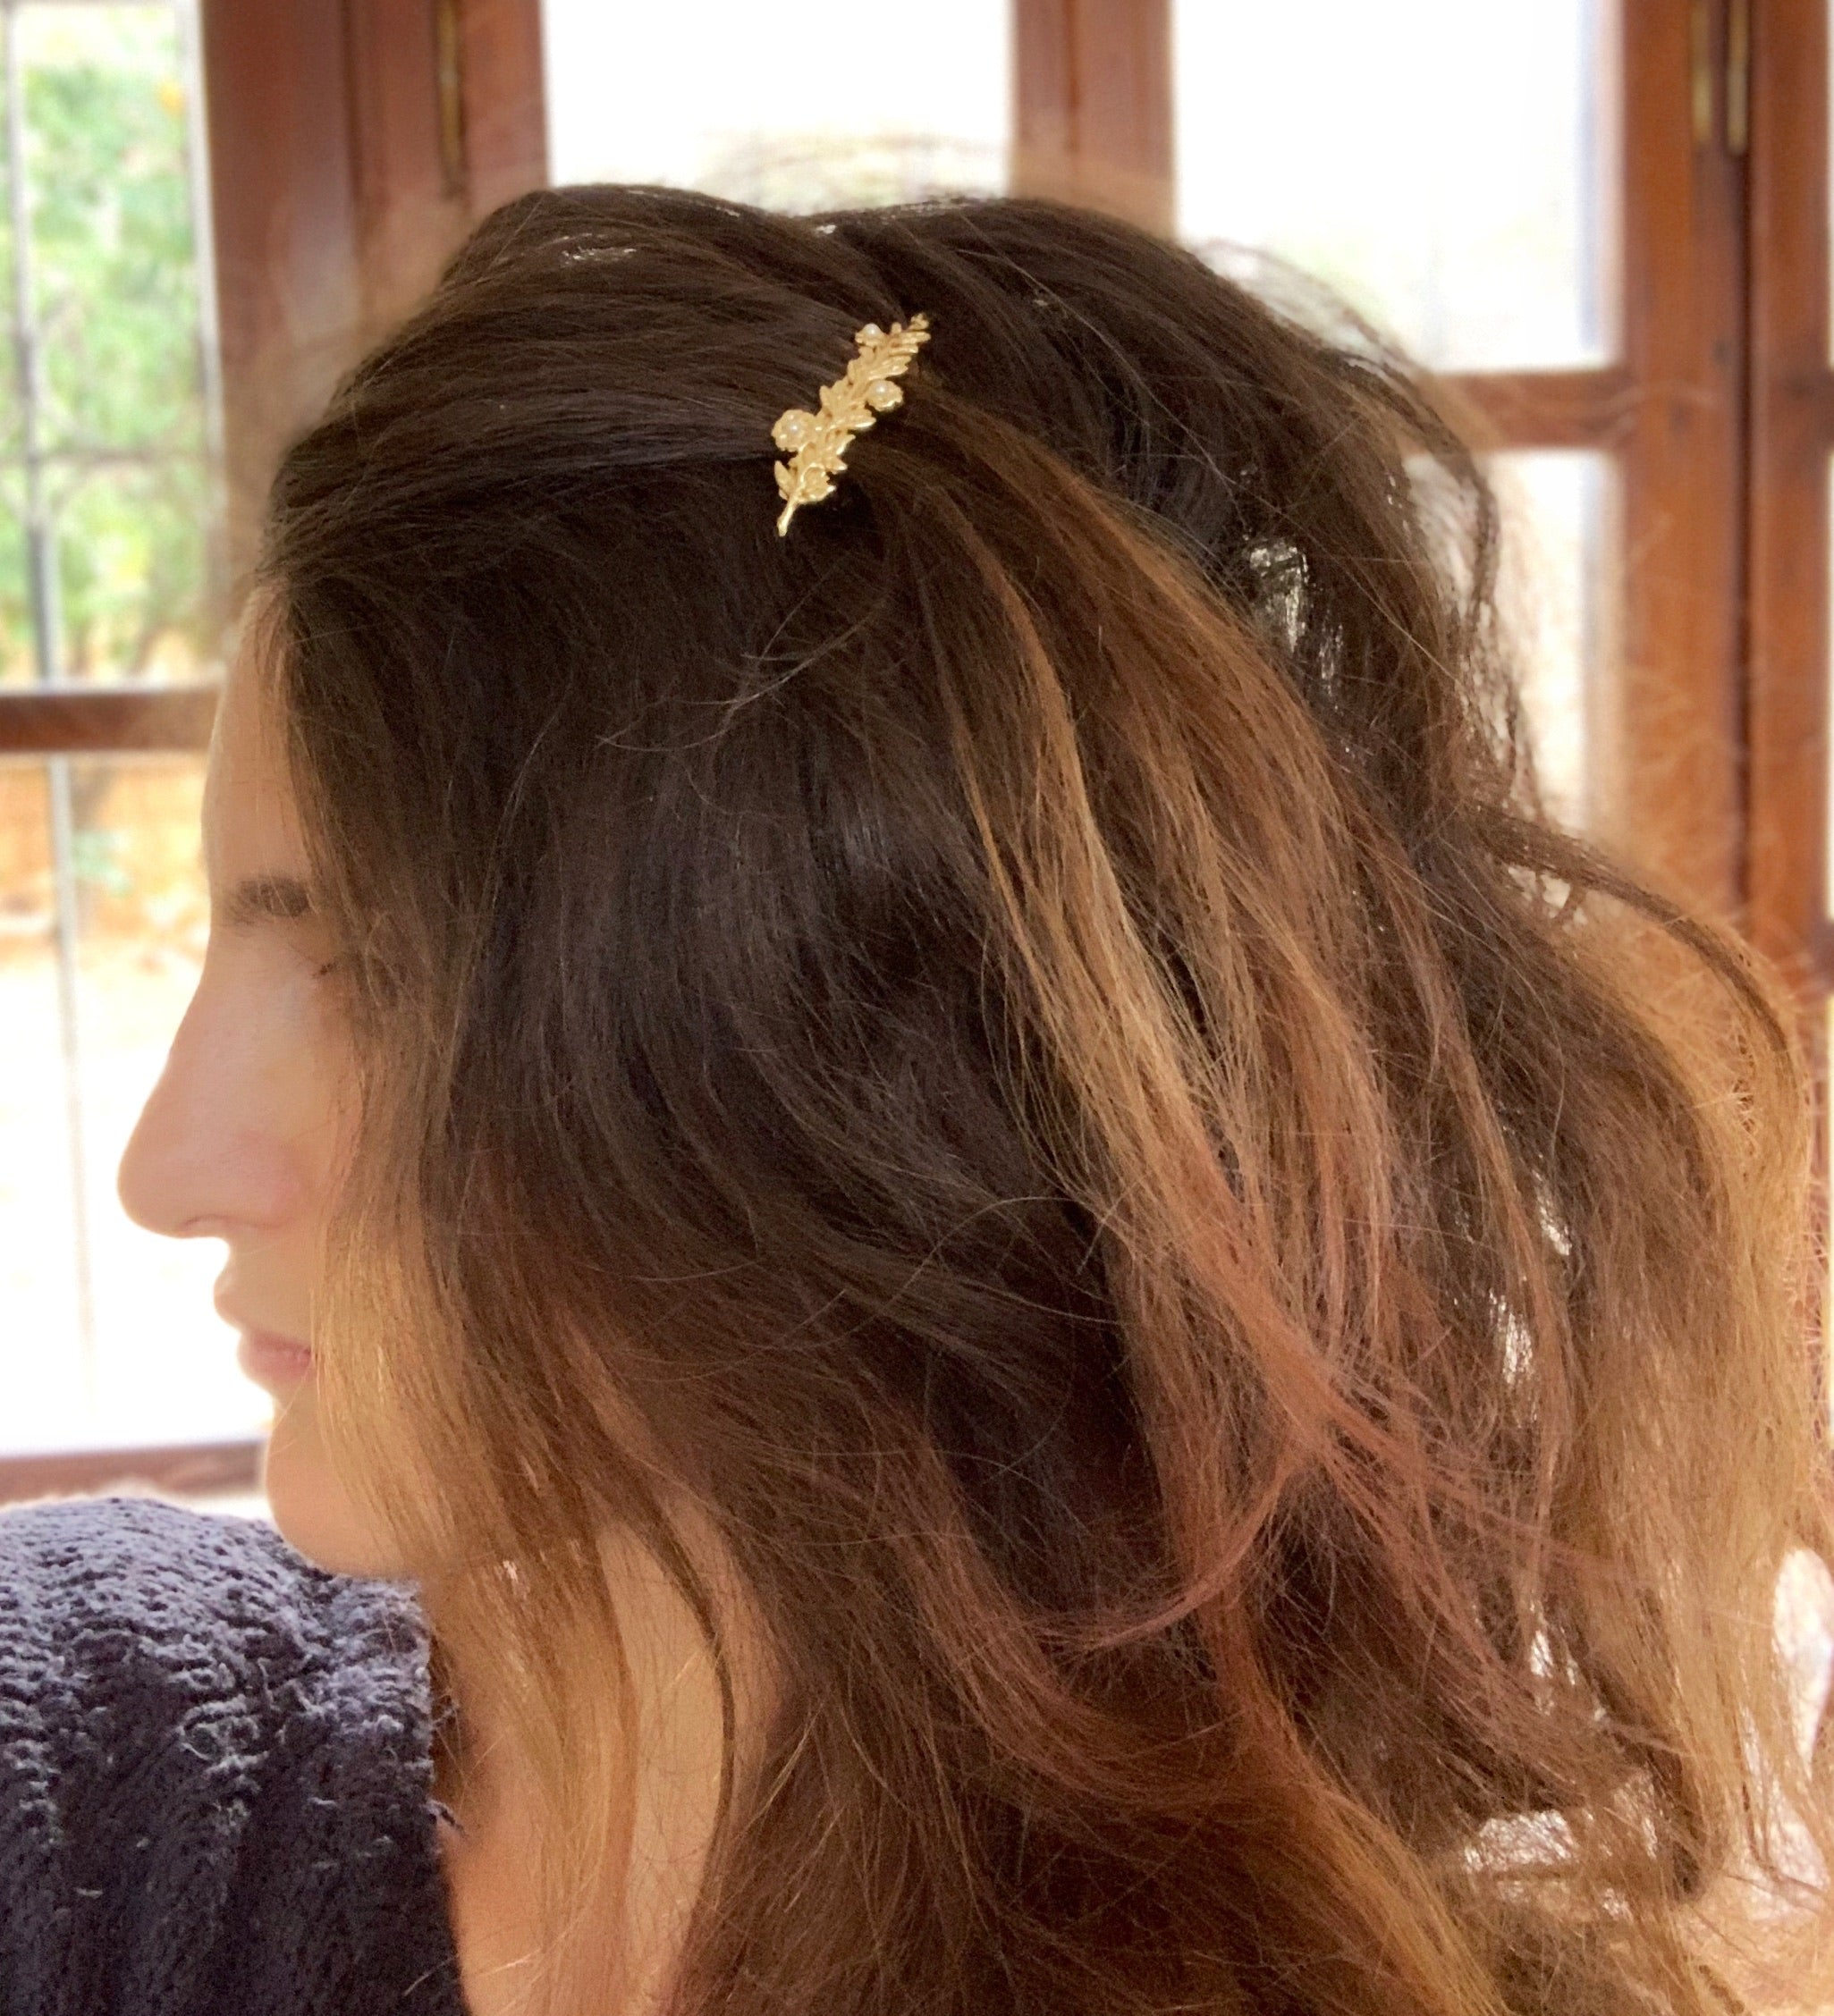 Blooming bouquets Barrette